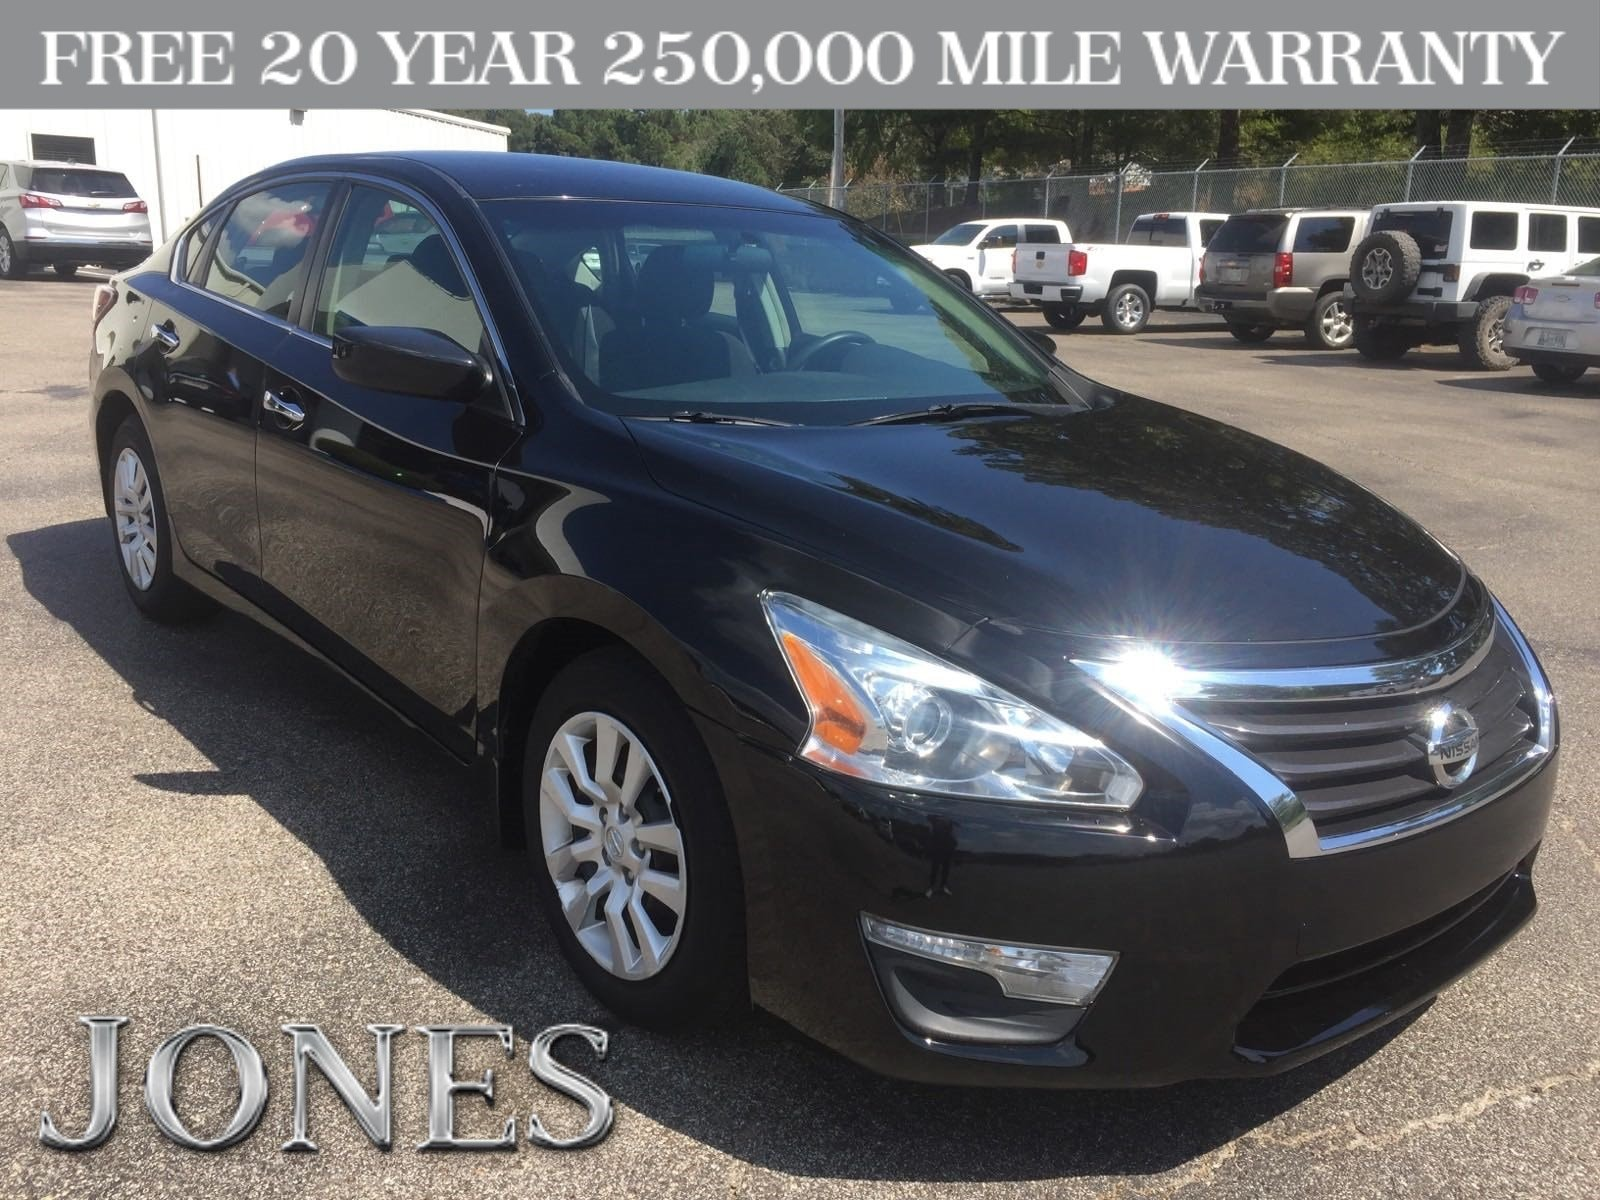 Used 2013 Nissan Altima 2.5 S Sedan I 4 Cyl In Savannah, TN